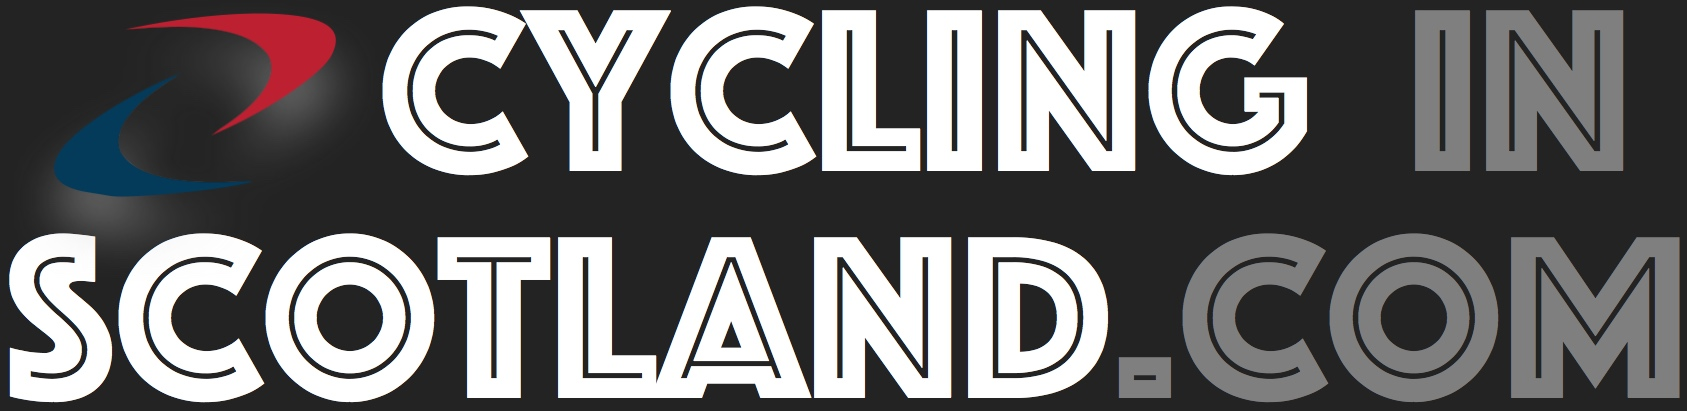 CyclinginScotland.com